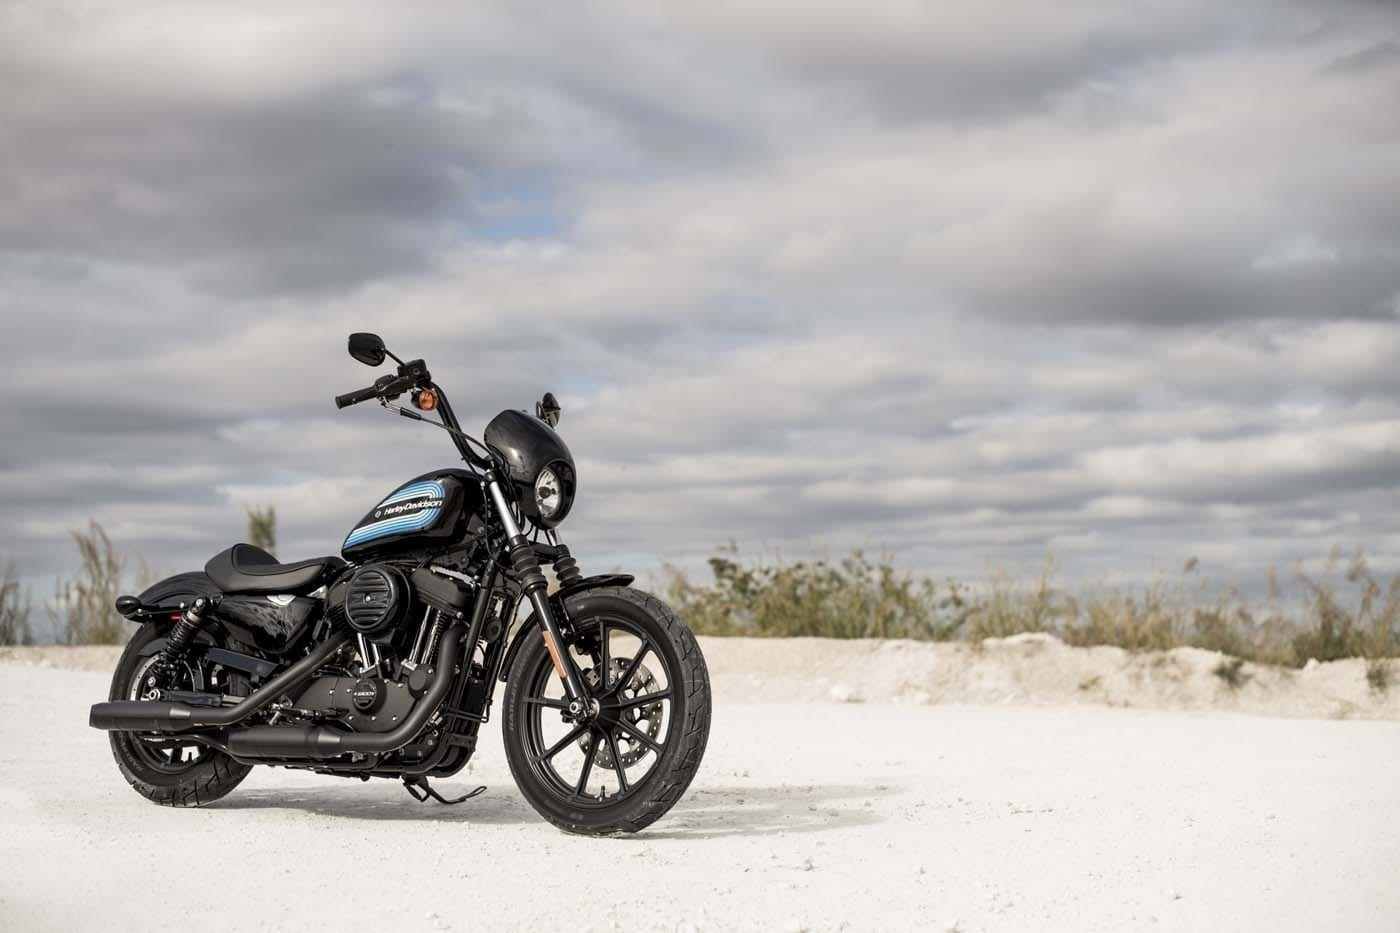 HARLEY-DAVIDSON FORTY-EIGHT SPECIAL AND IRON 1200 SPORTSTERS 12